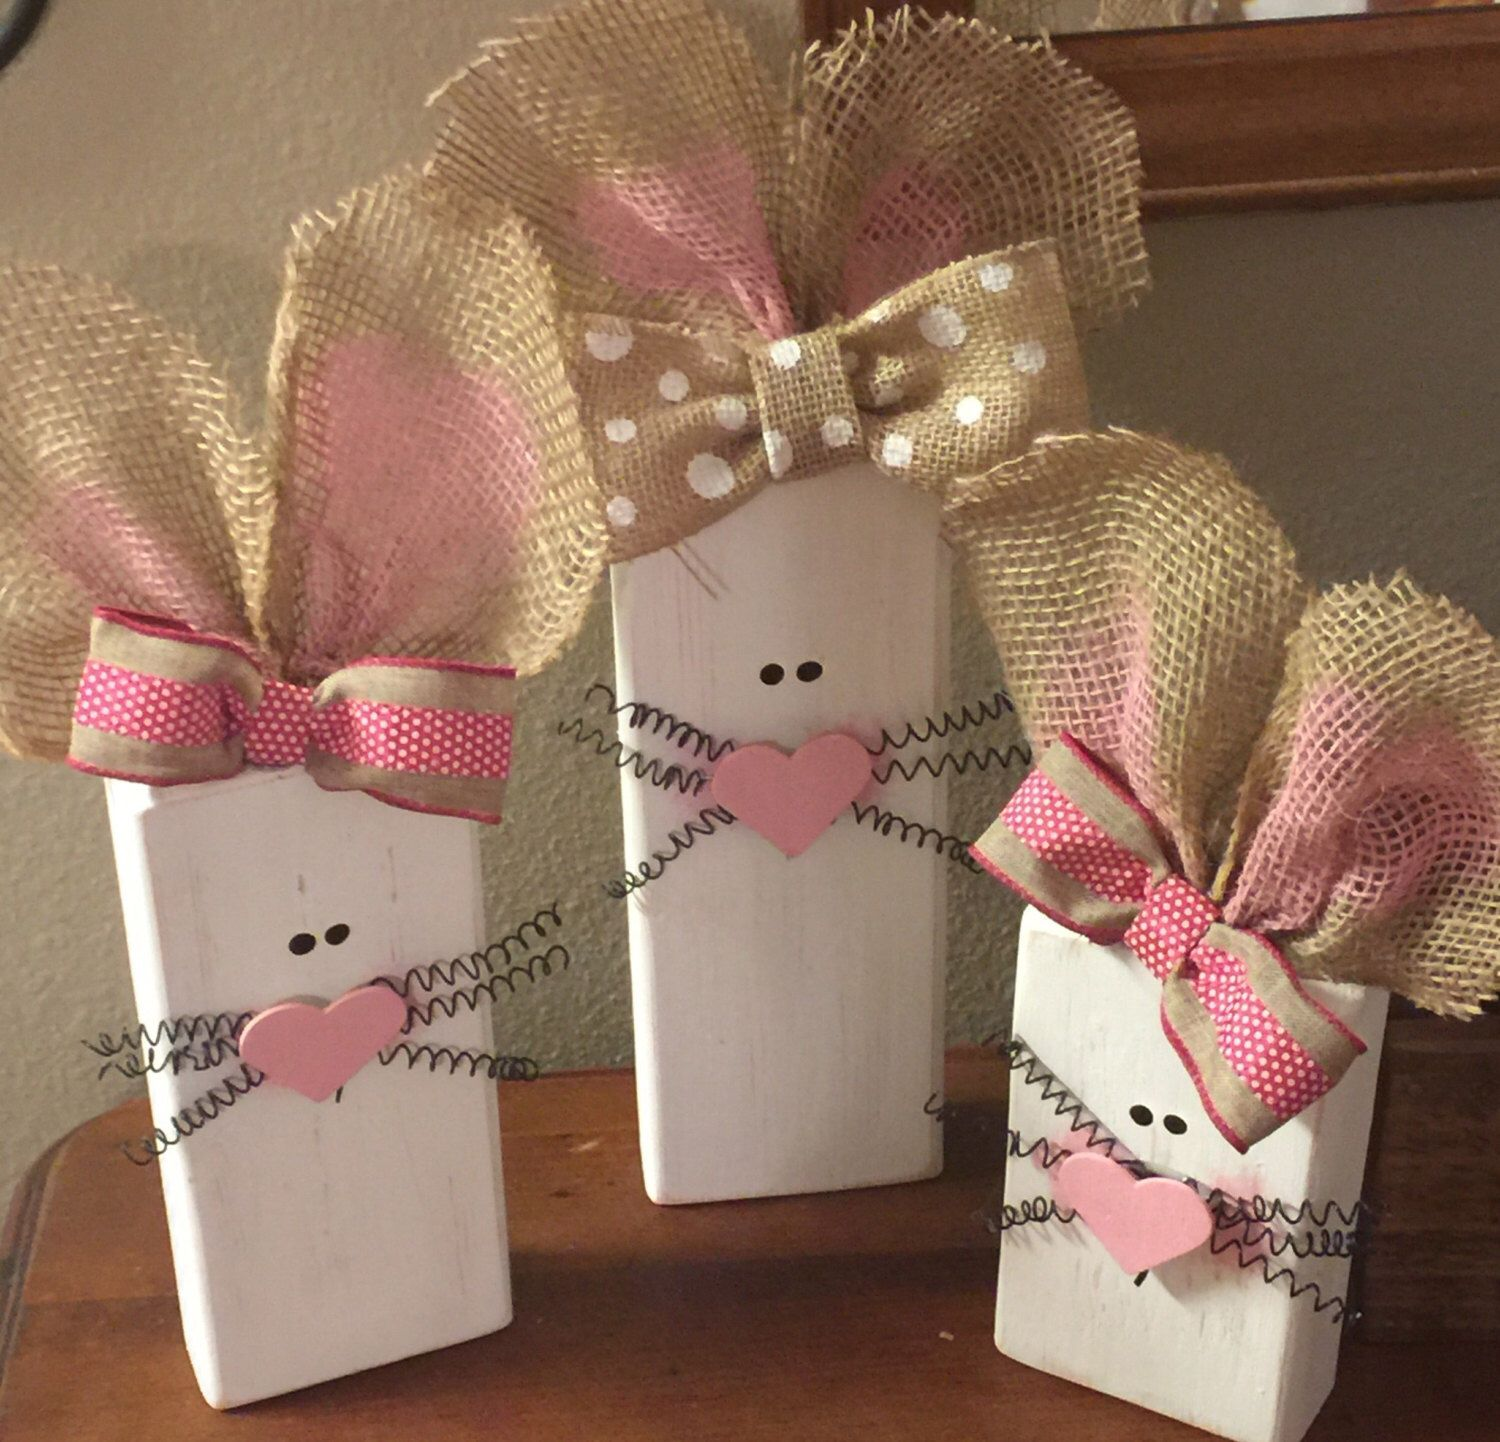 3 X Easter Bunnies Chicks Hanging Decorations Handmade Real Wood Happy Easter